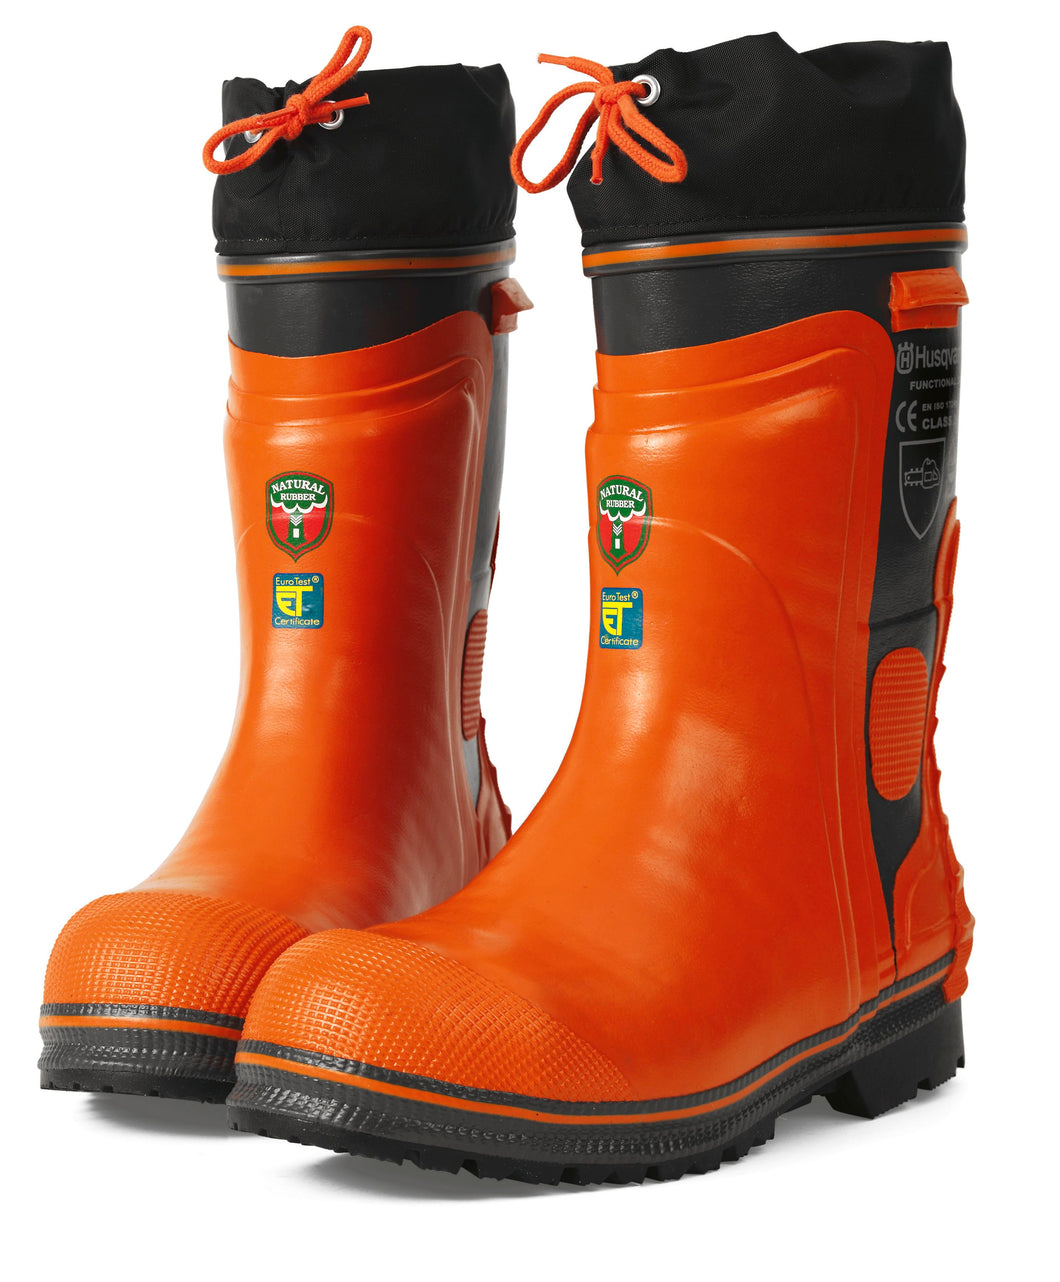 Husqvarna Functional 24 Rubber Chainsaw Boots